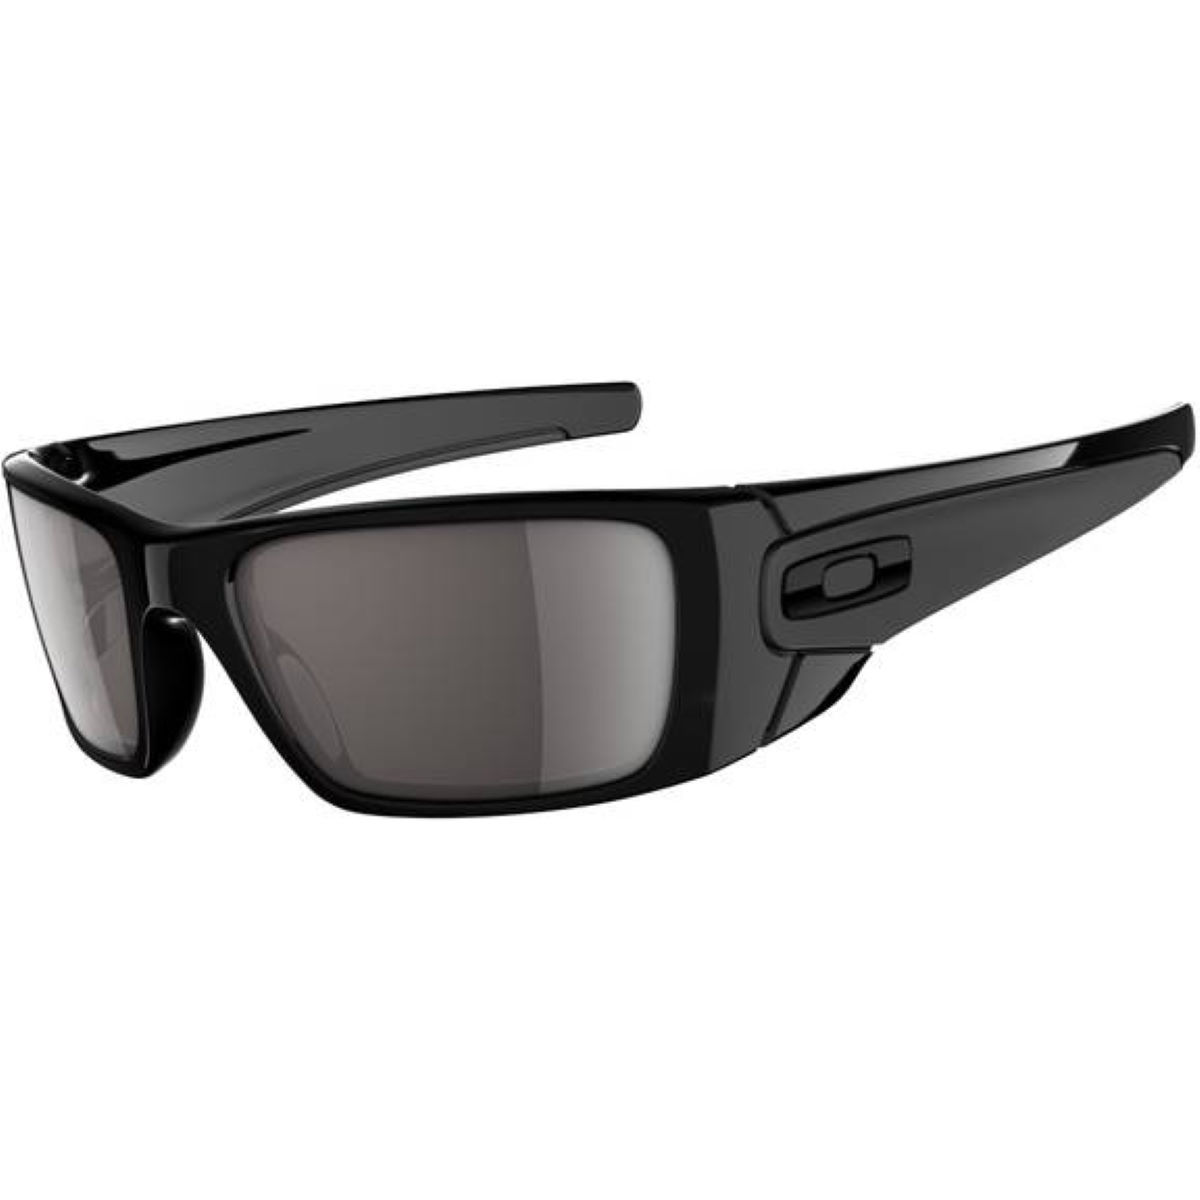 Oakley Fuel Cell Sunglasses - Warm Grey Lens